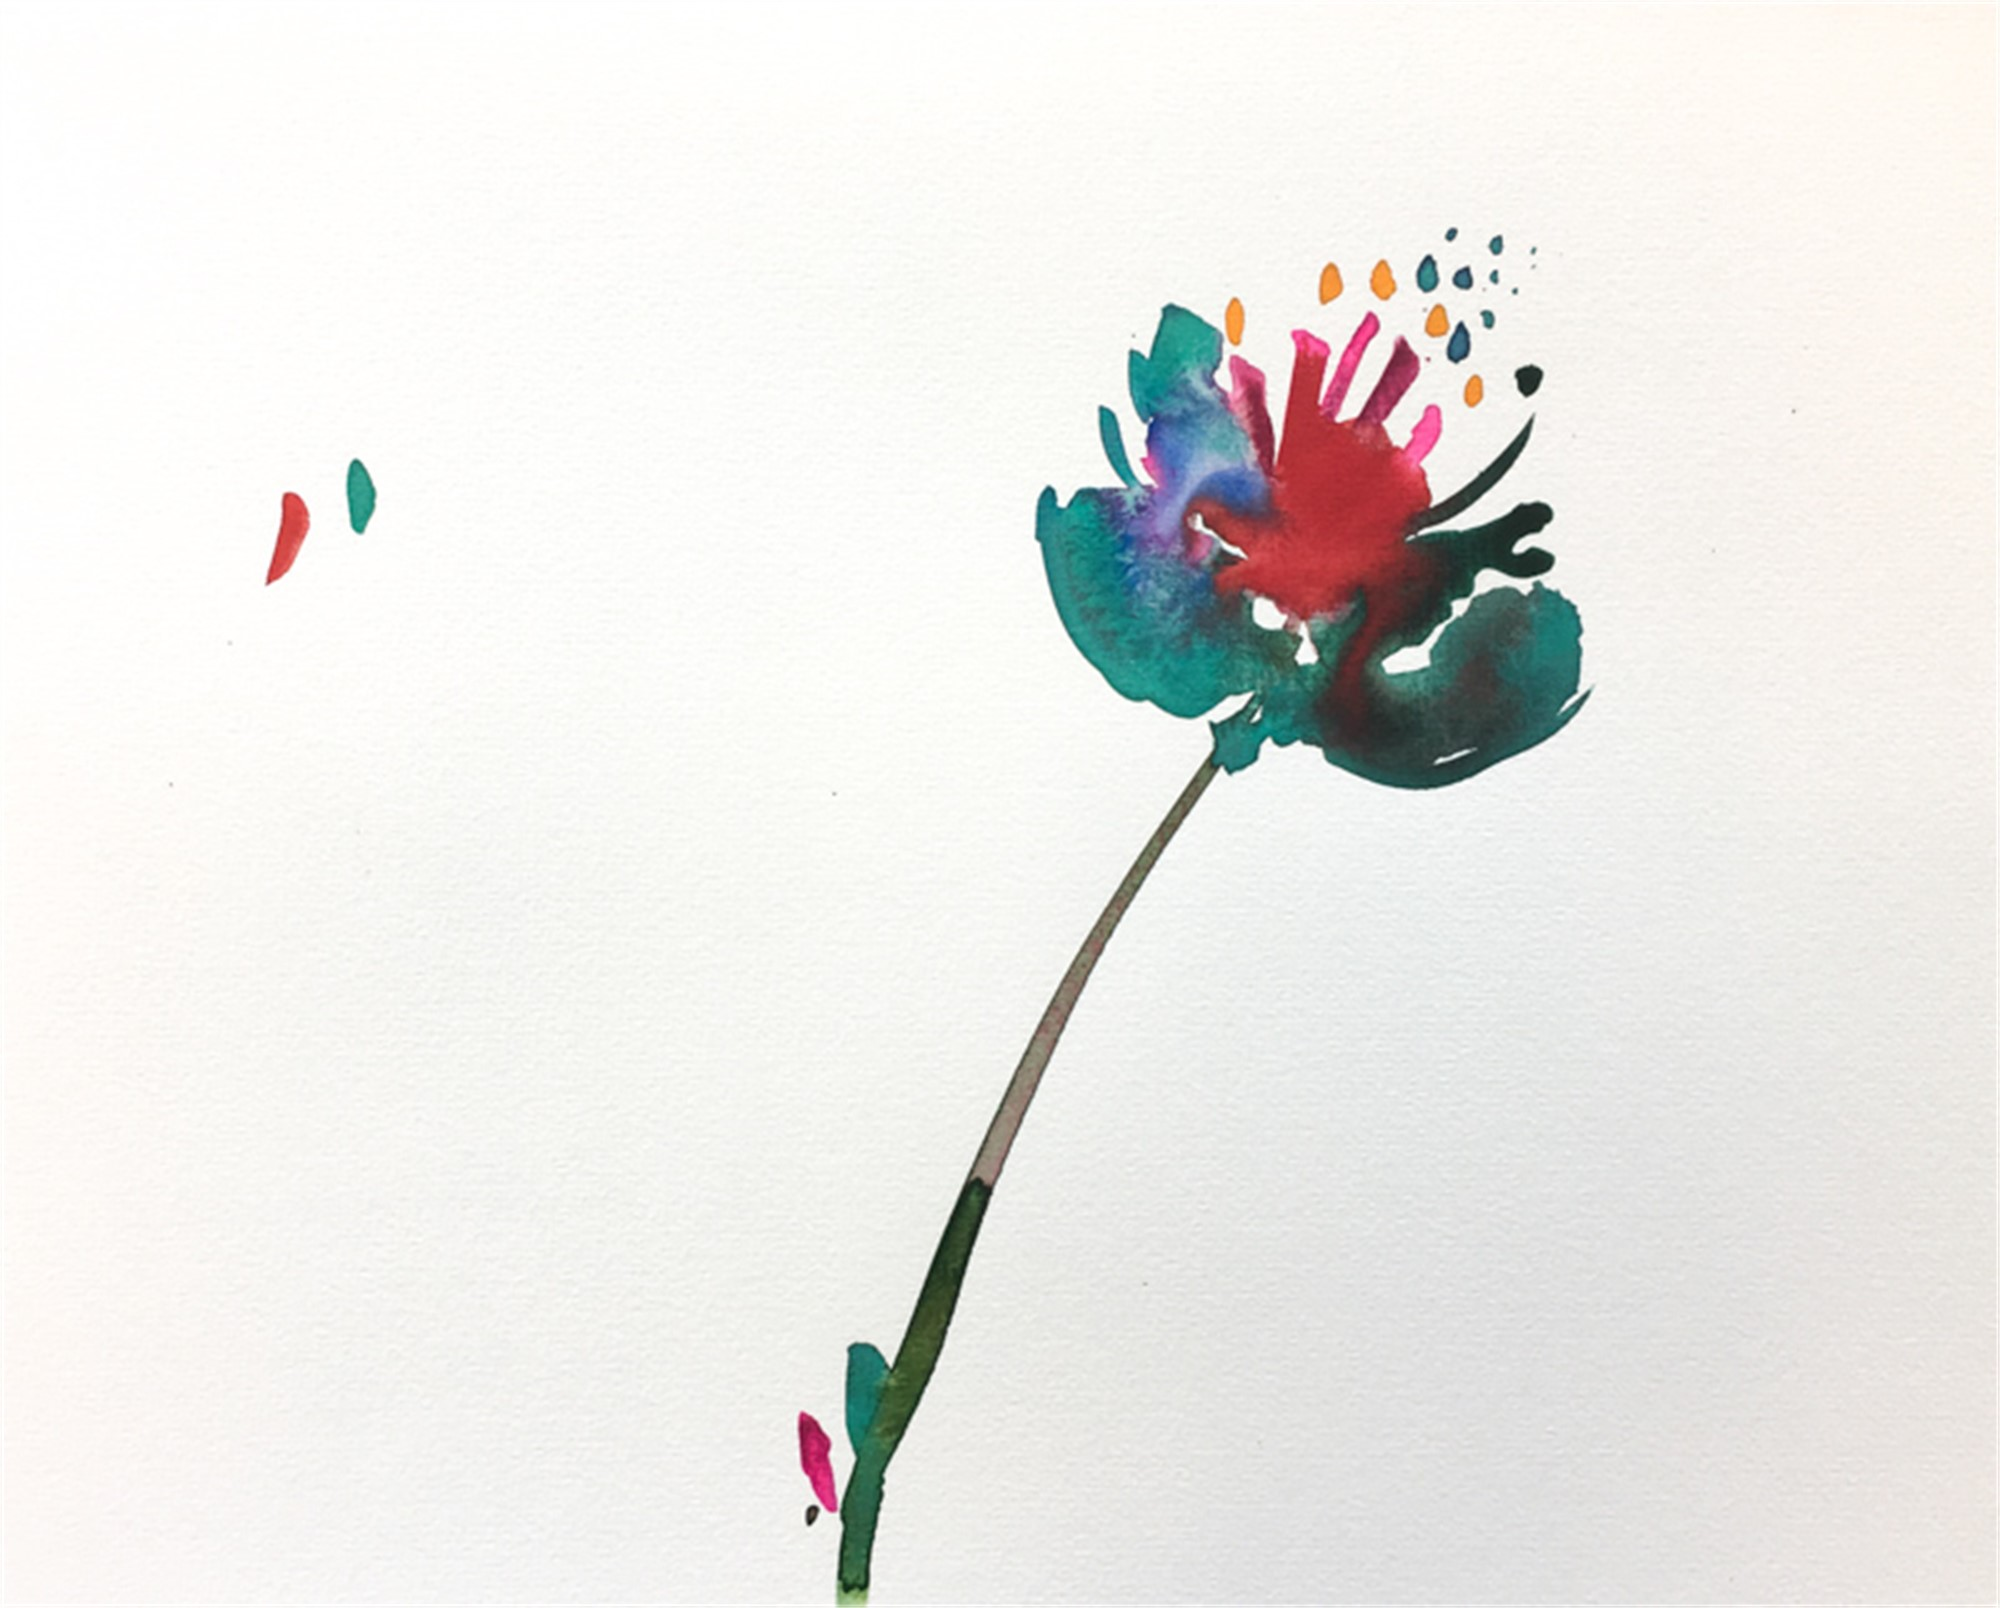 Floral Watercolor No. 4 by Christian Rothmann